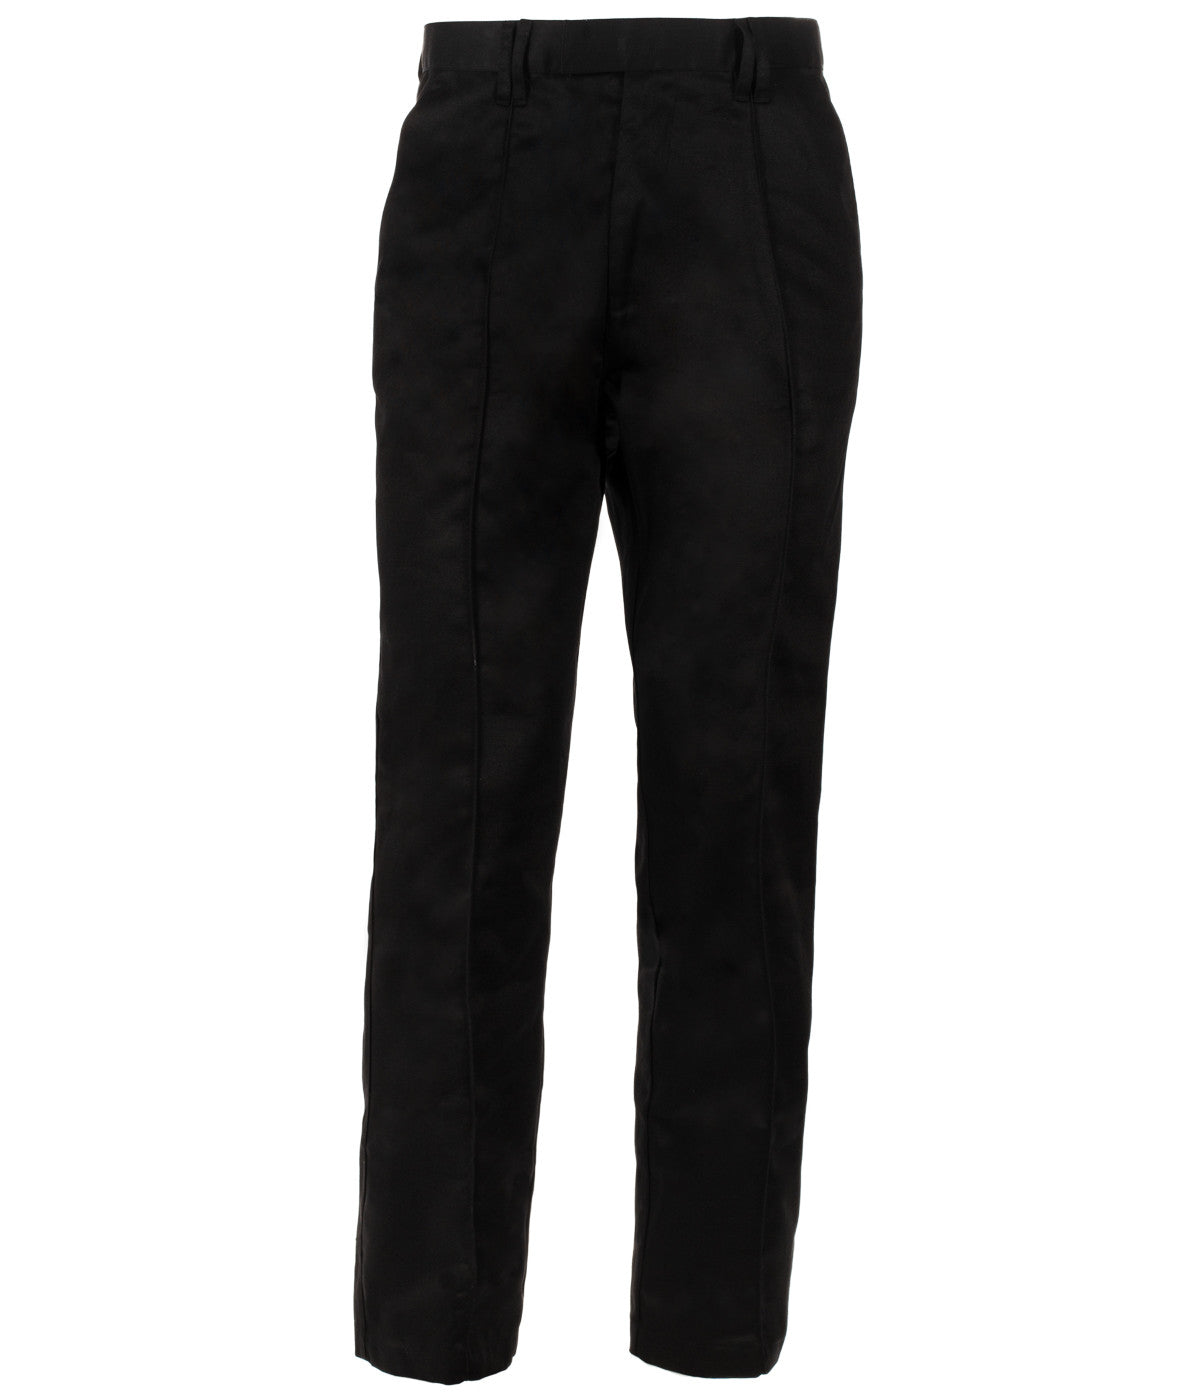 T25 Heavyweight Classic Work Trousers